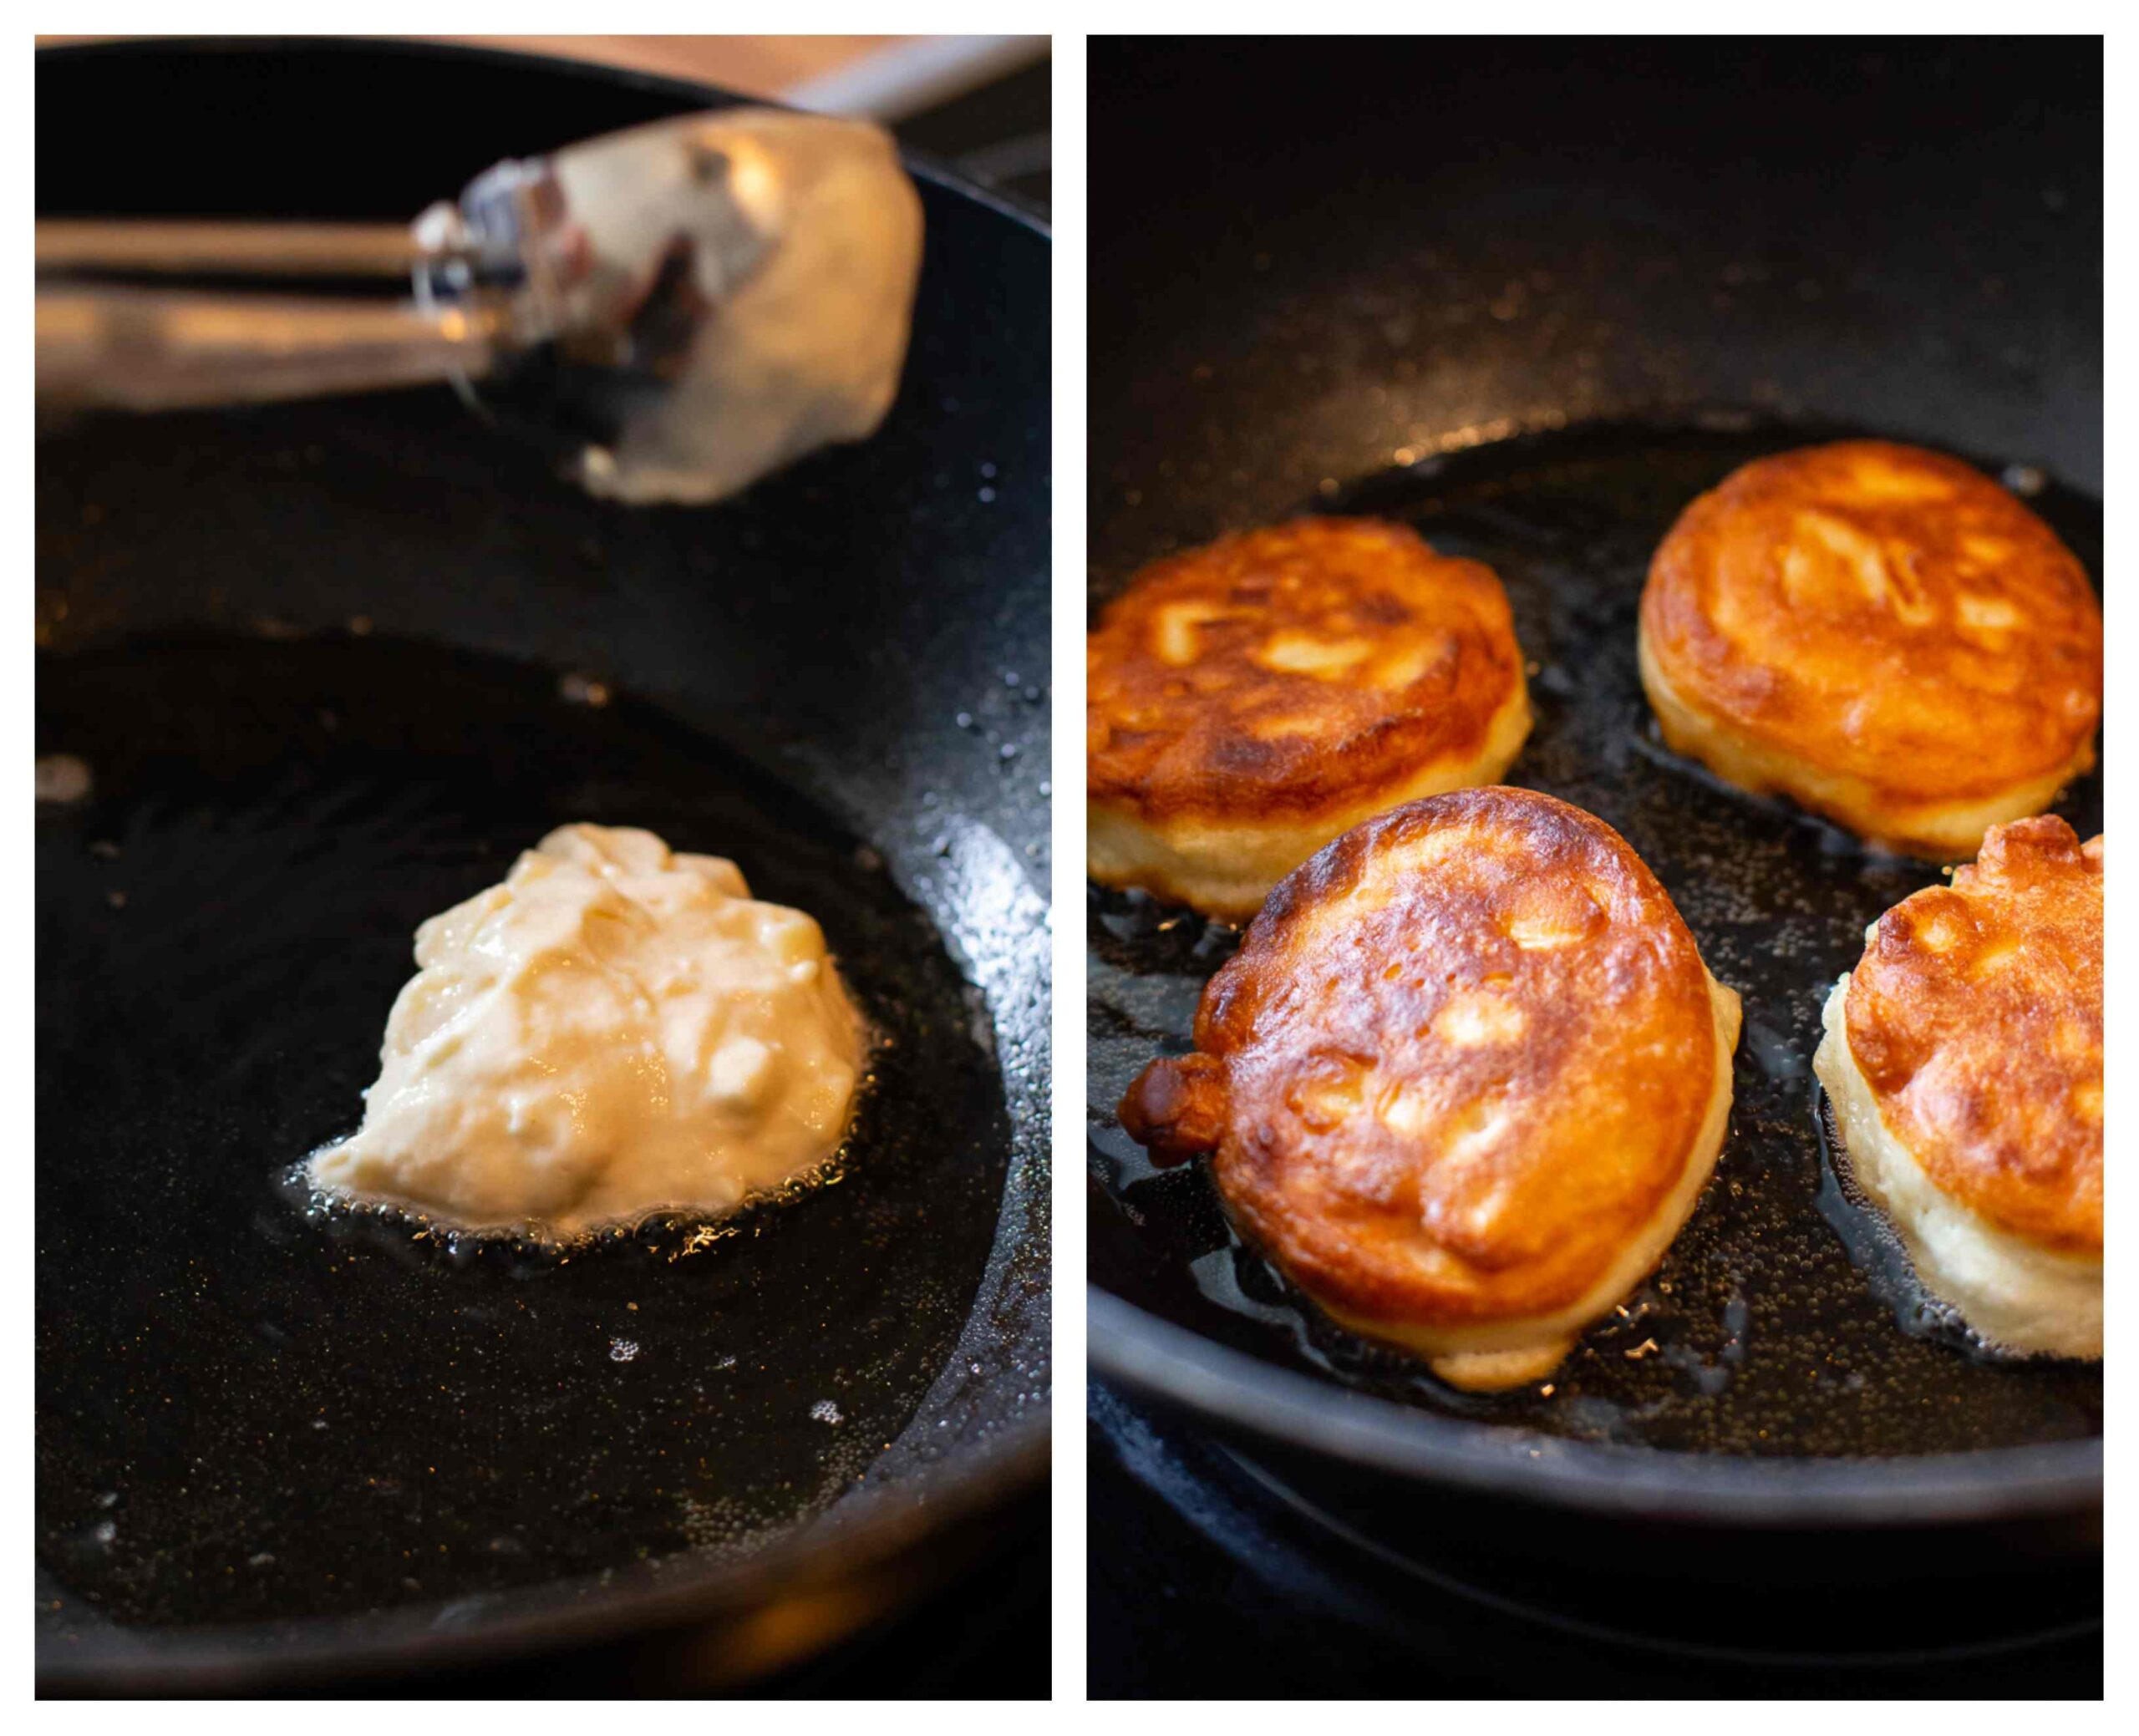 Fritters cooking process images